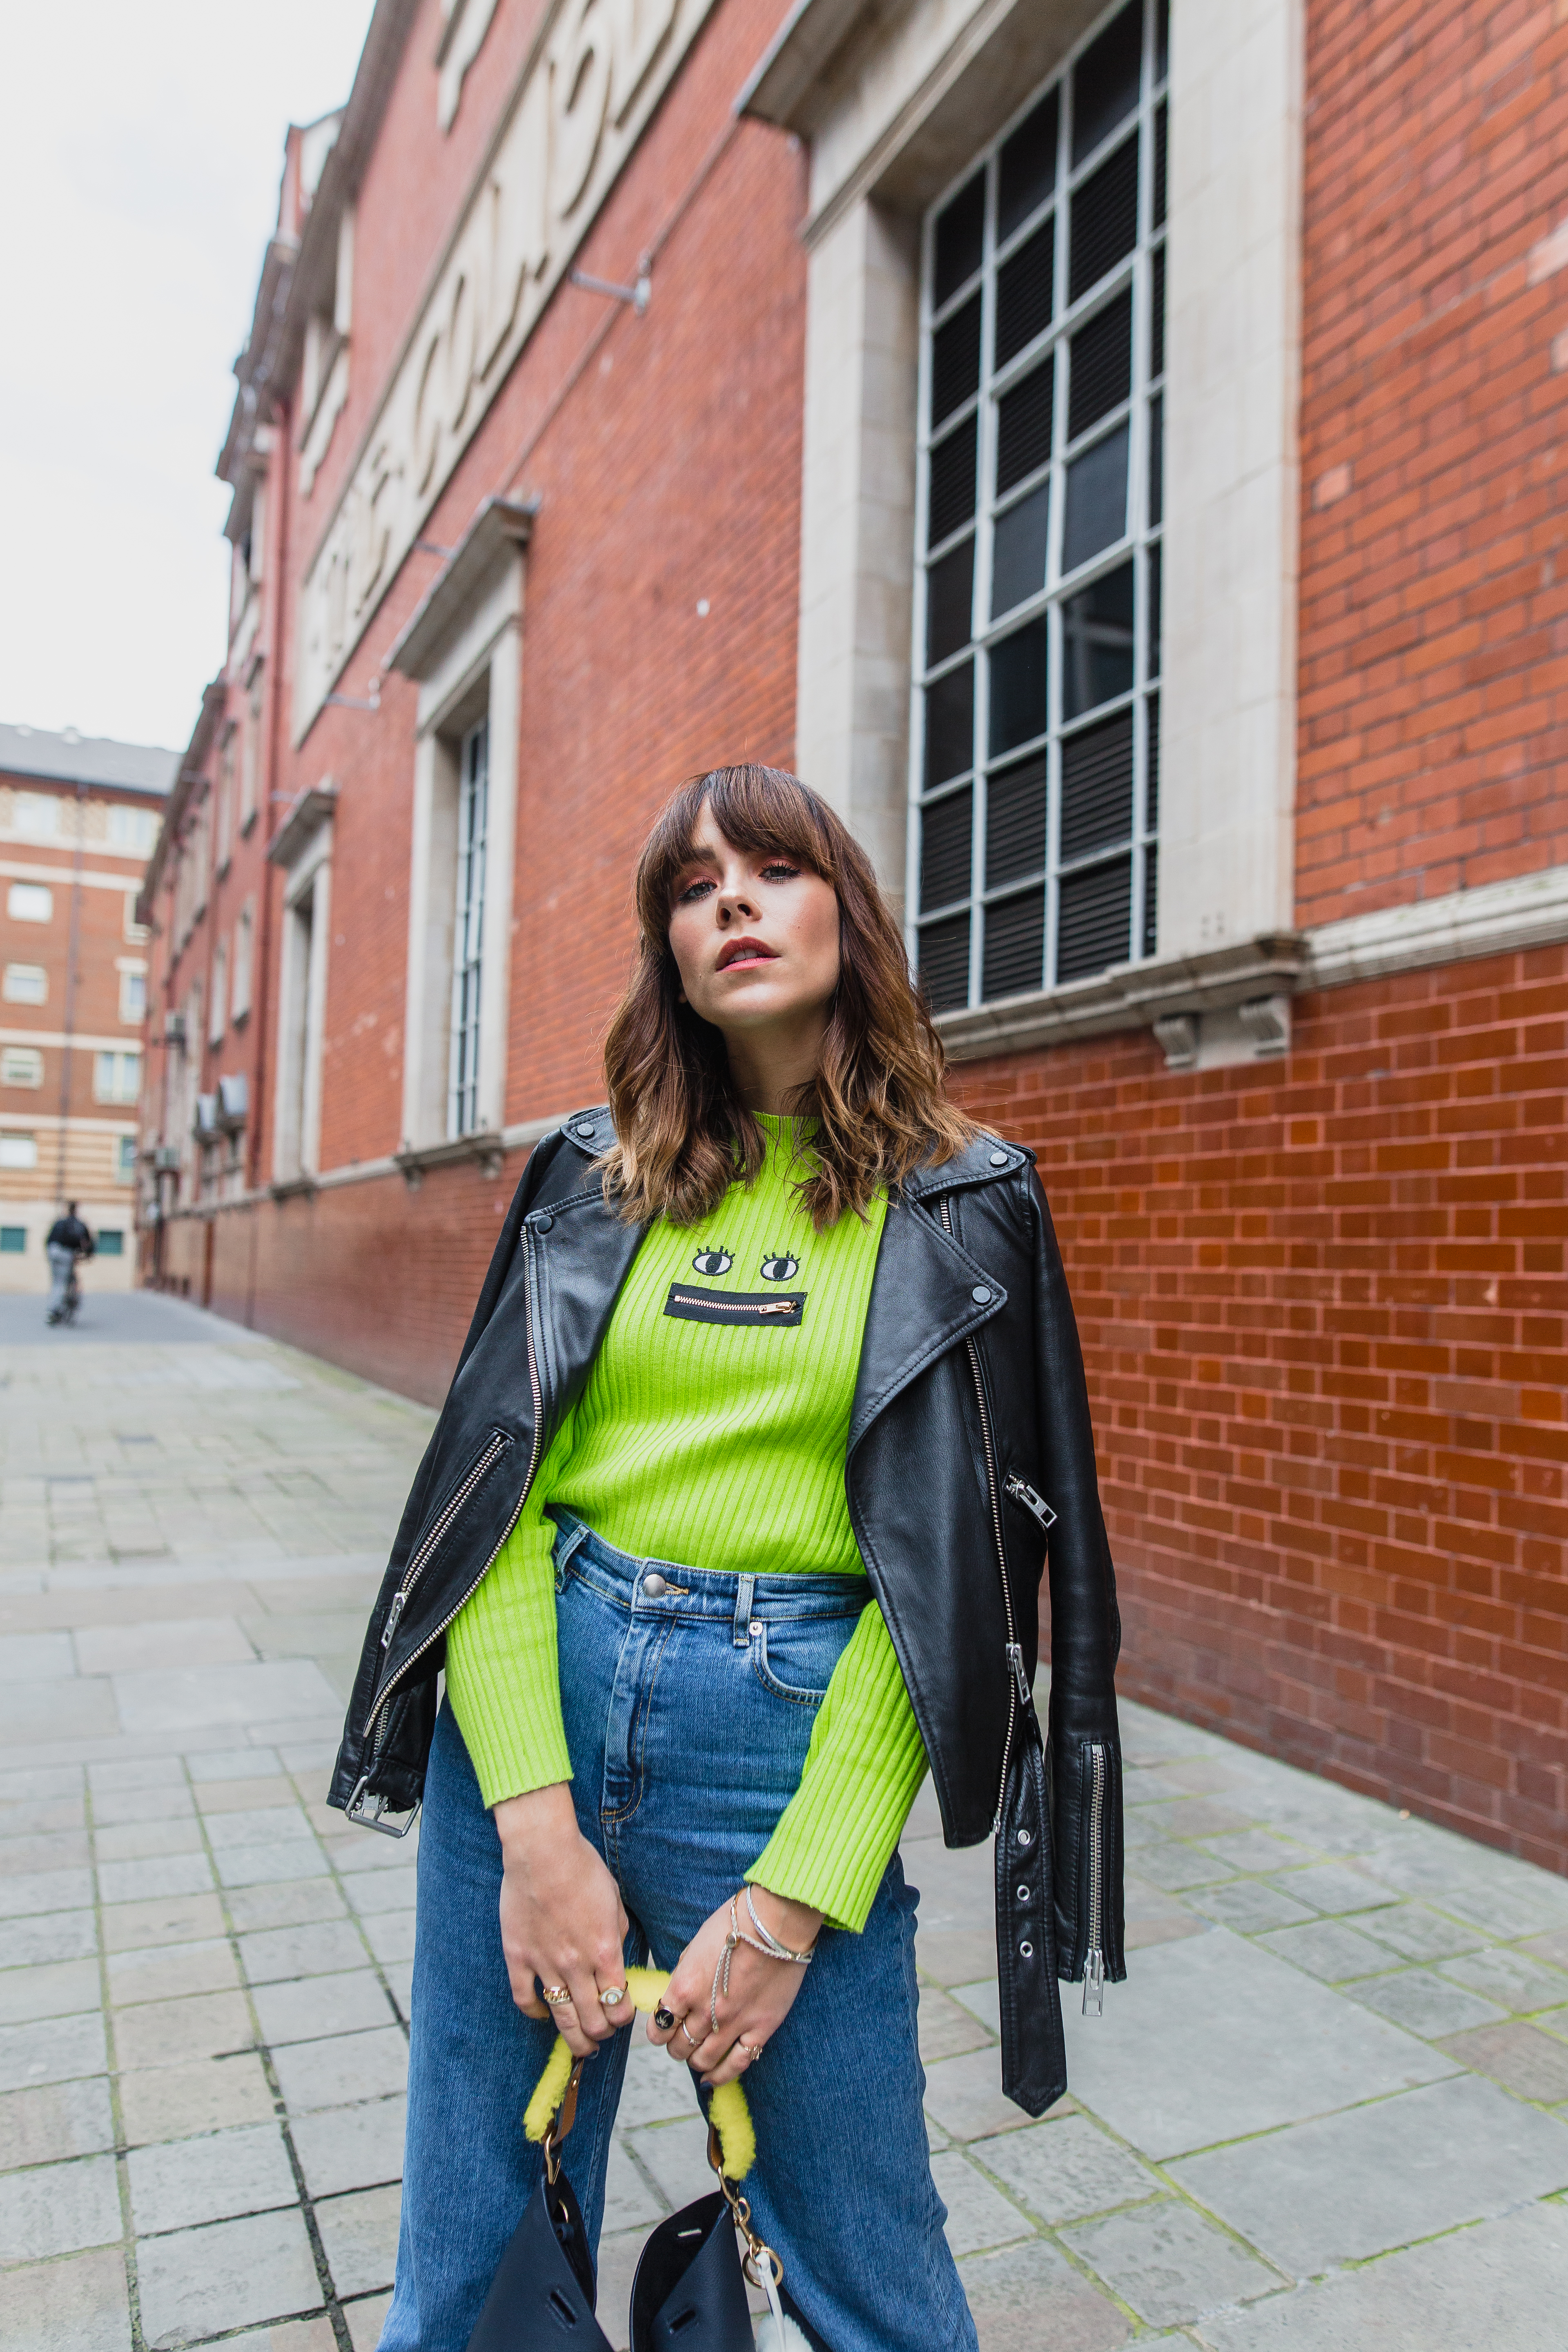 MEGAN ELLABY SHOWS HOW TO WEAR COLOUR